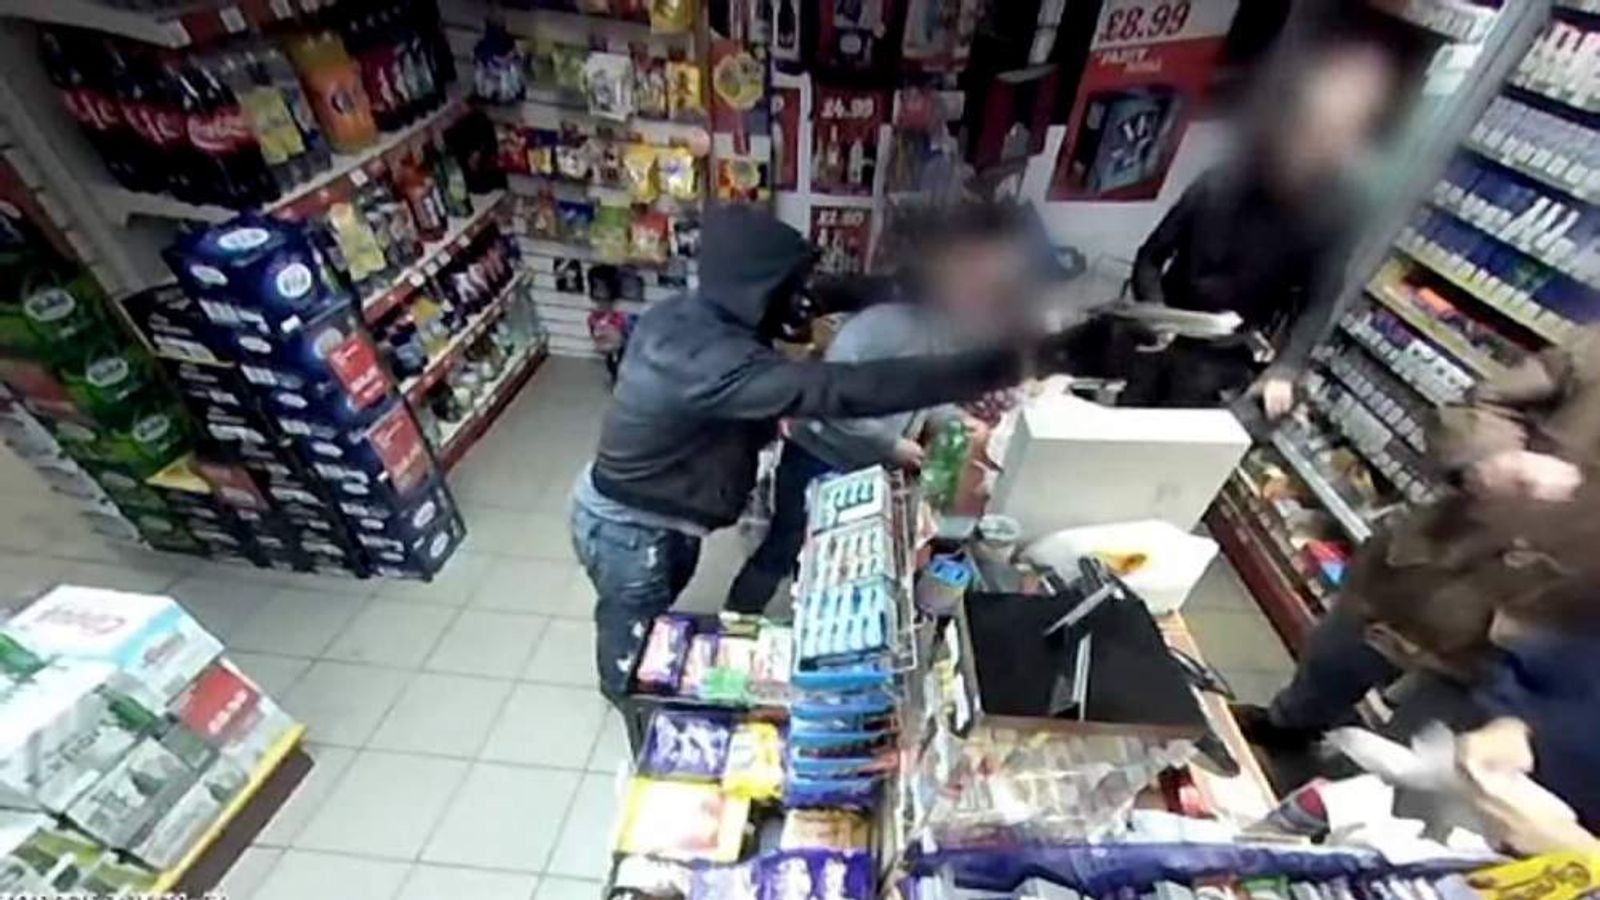 Shopkeeper fights off armed robber in Ramsbottom, Greater Manchester